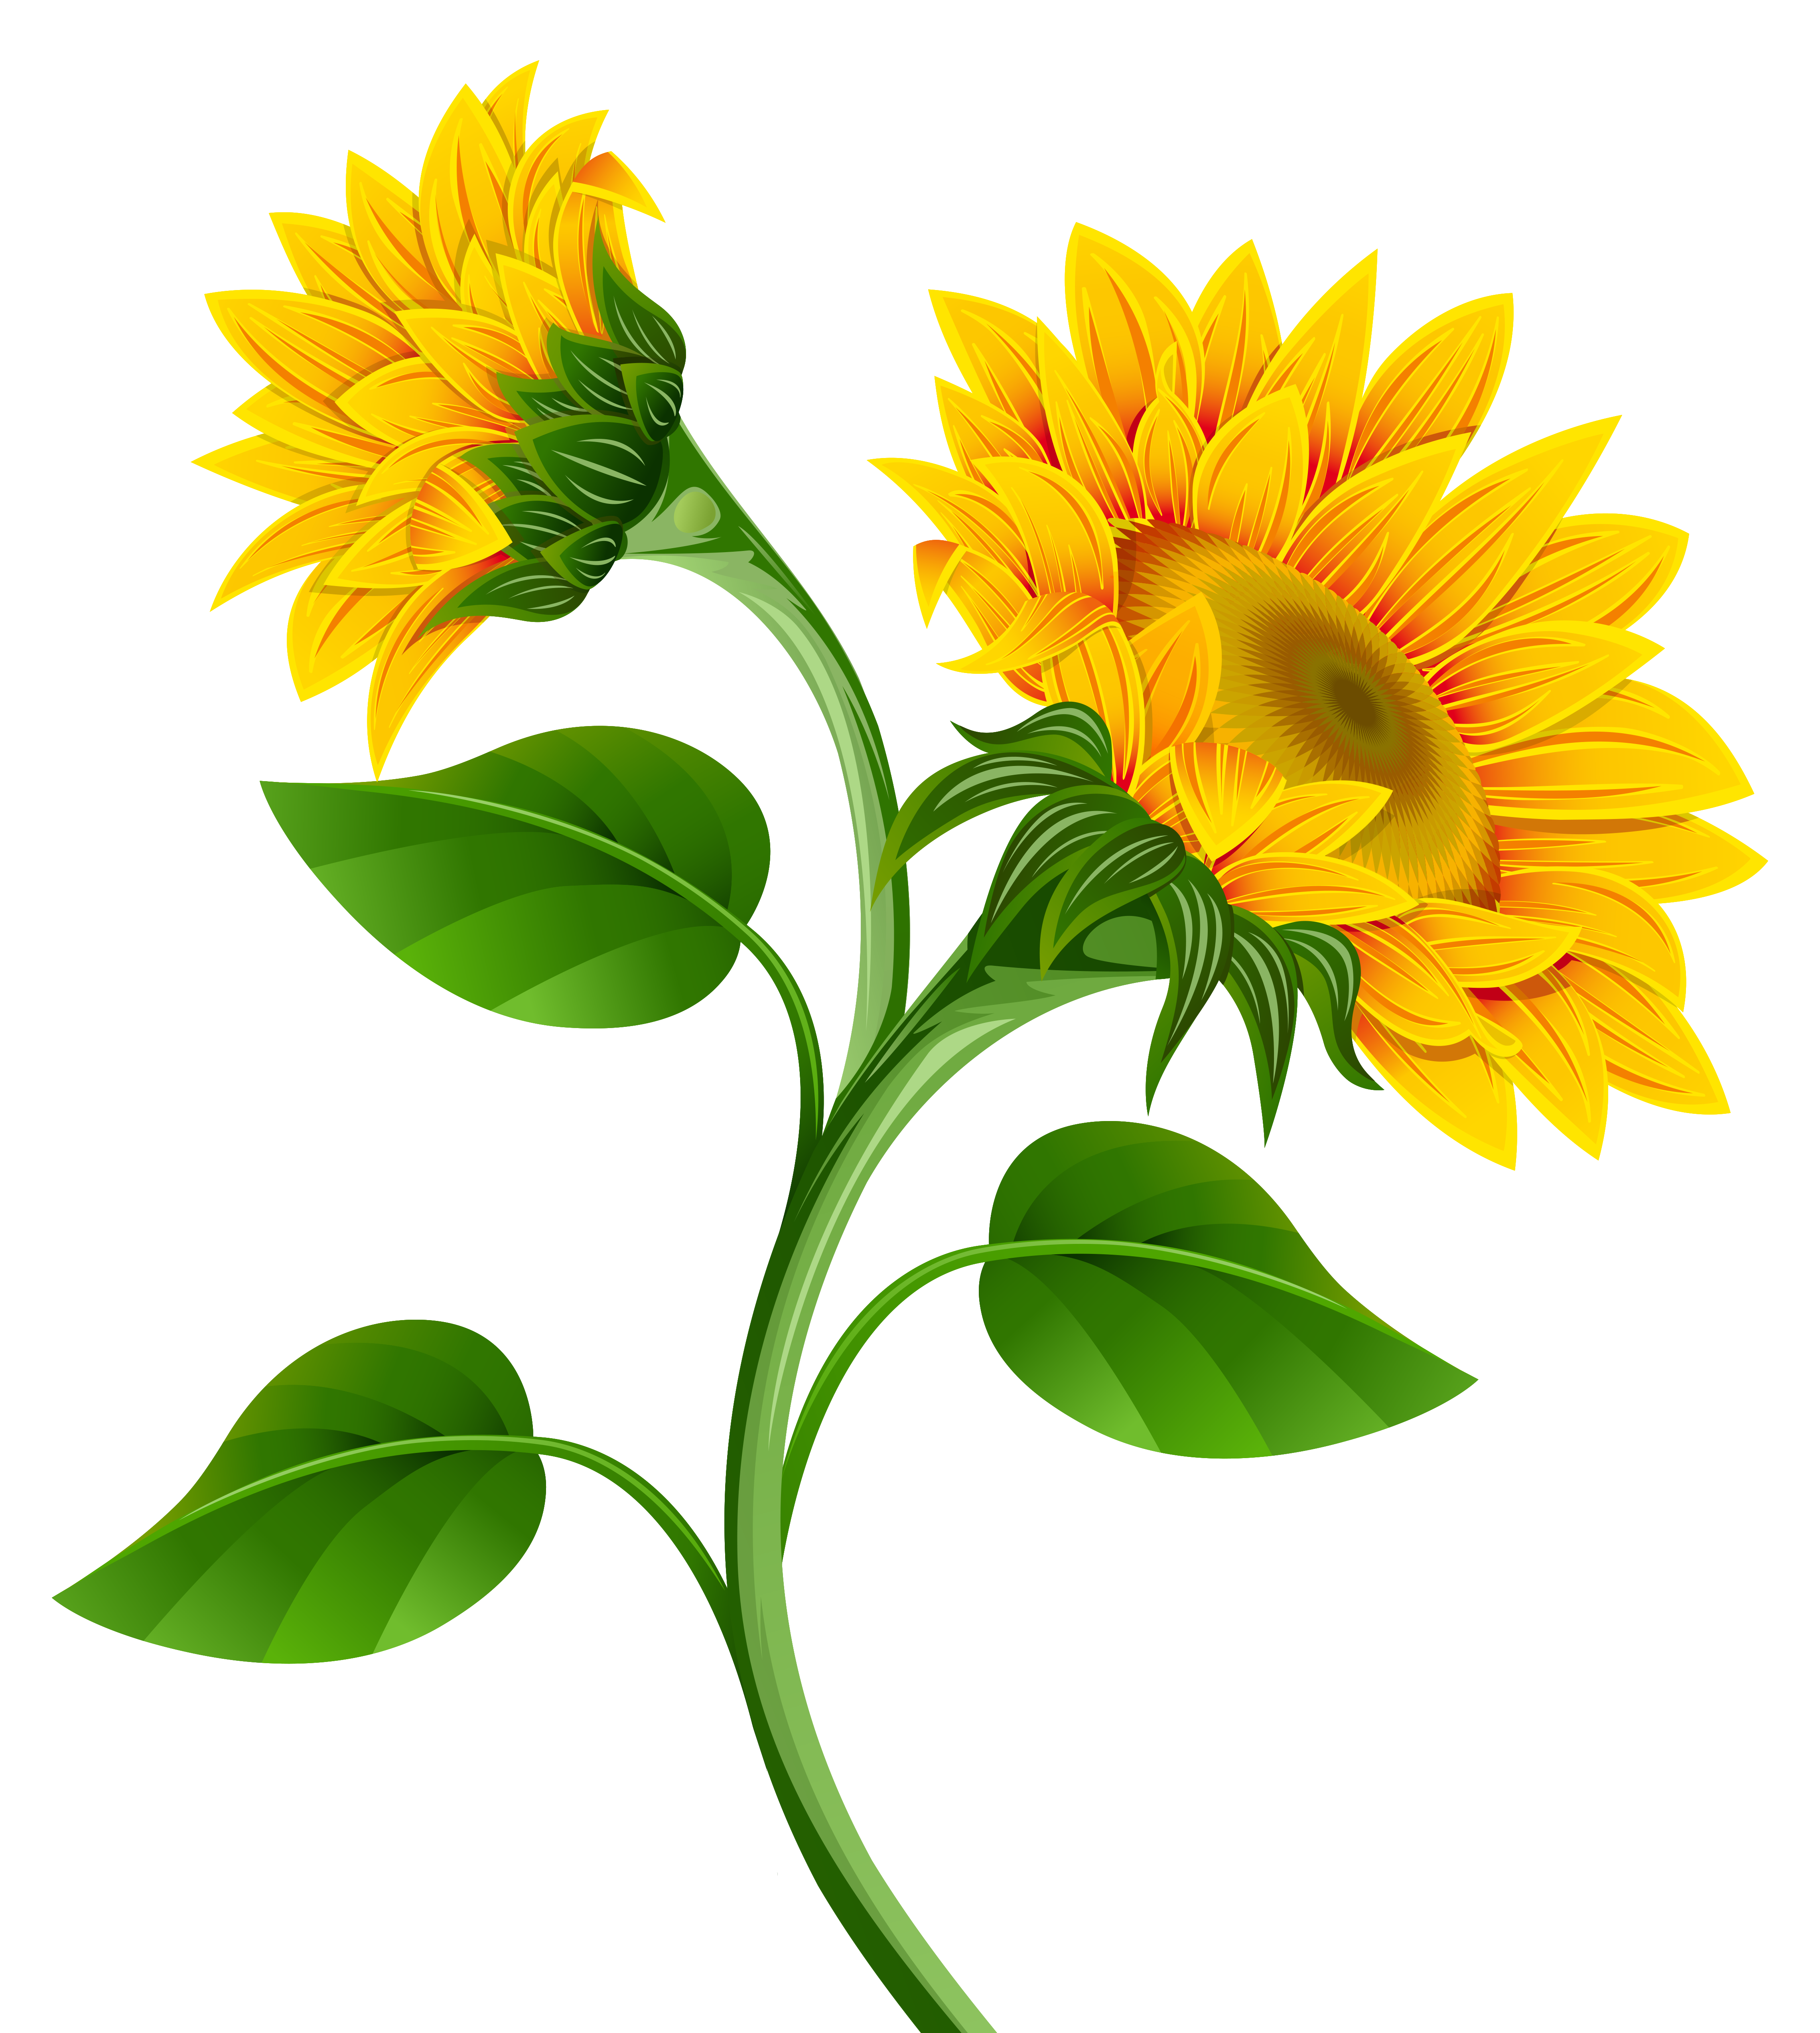 Sunflowers PNG Clipart Image.